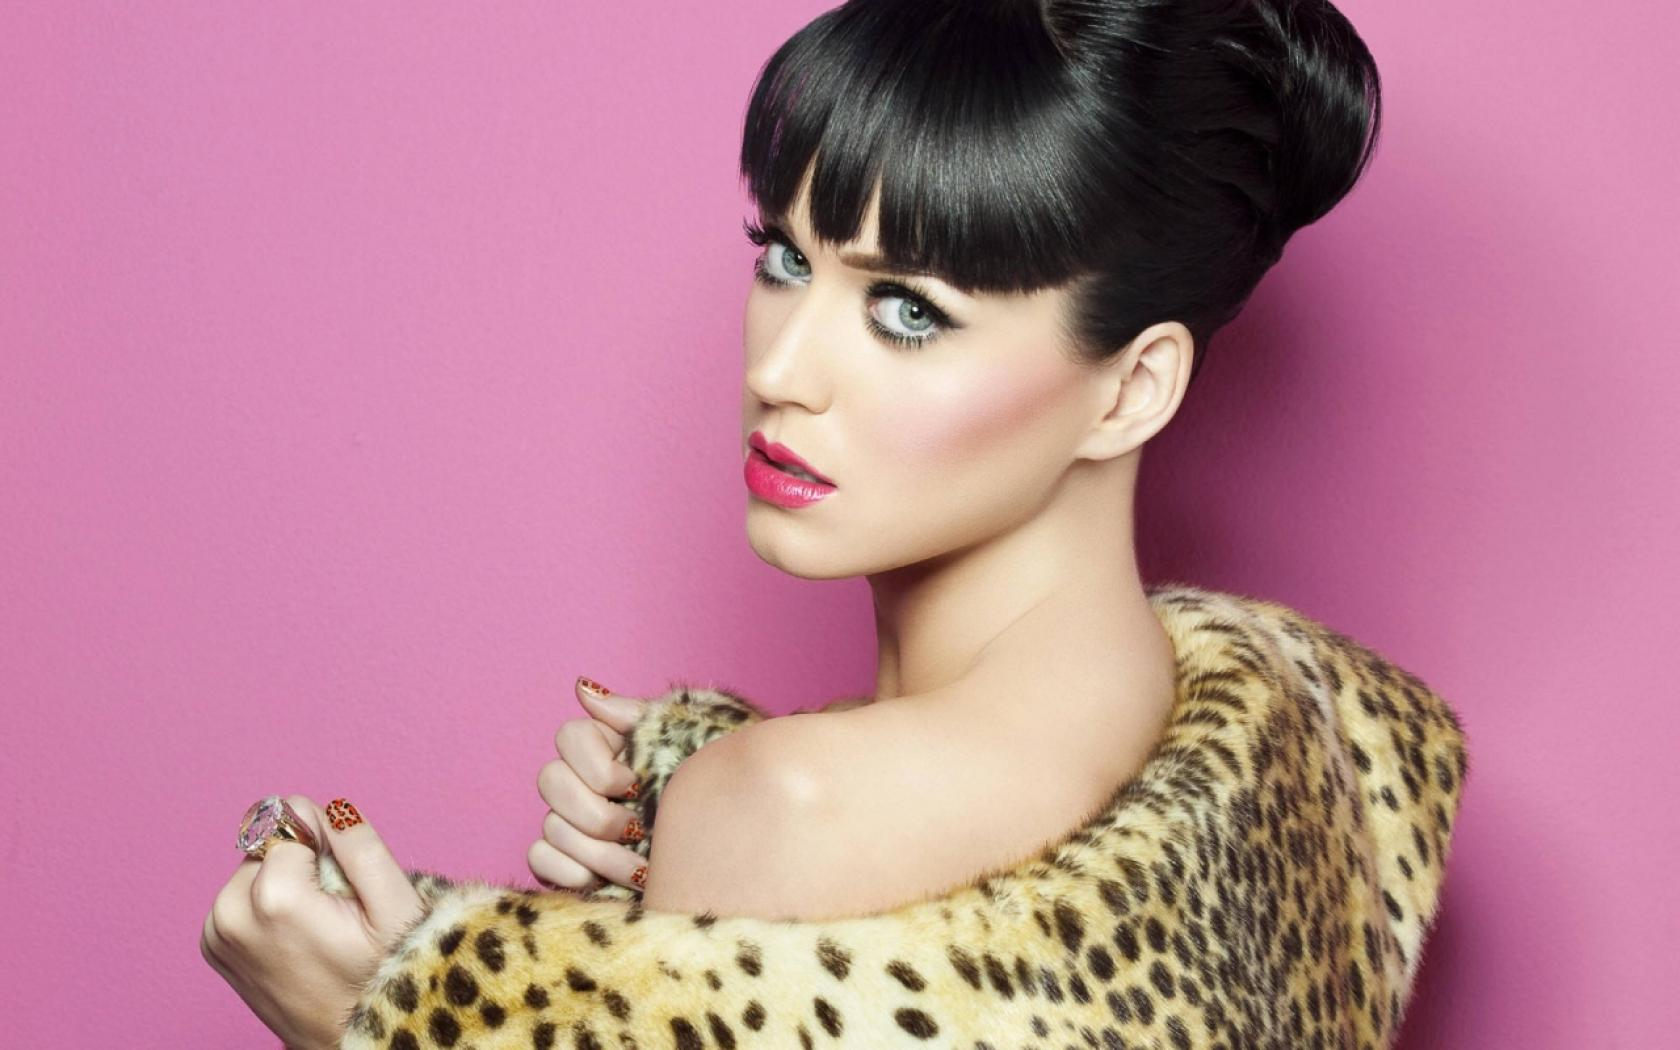 Katy Perry Wallpaper leopard dress